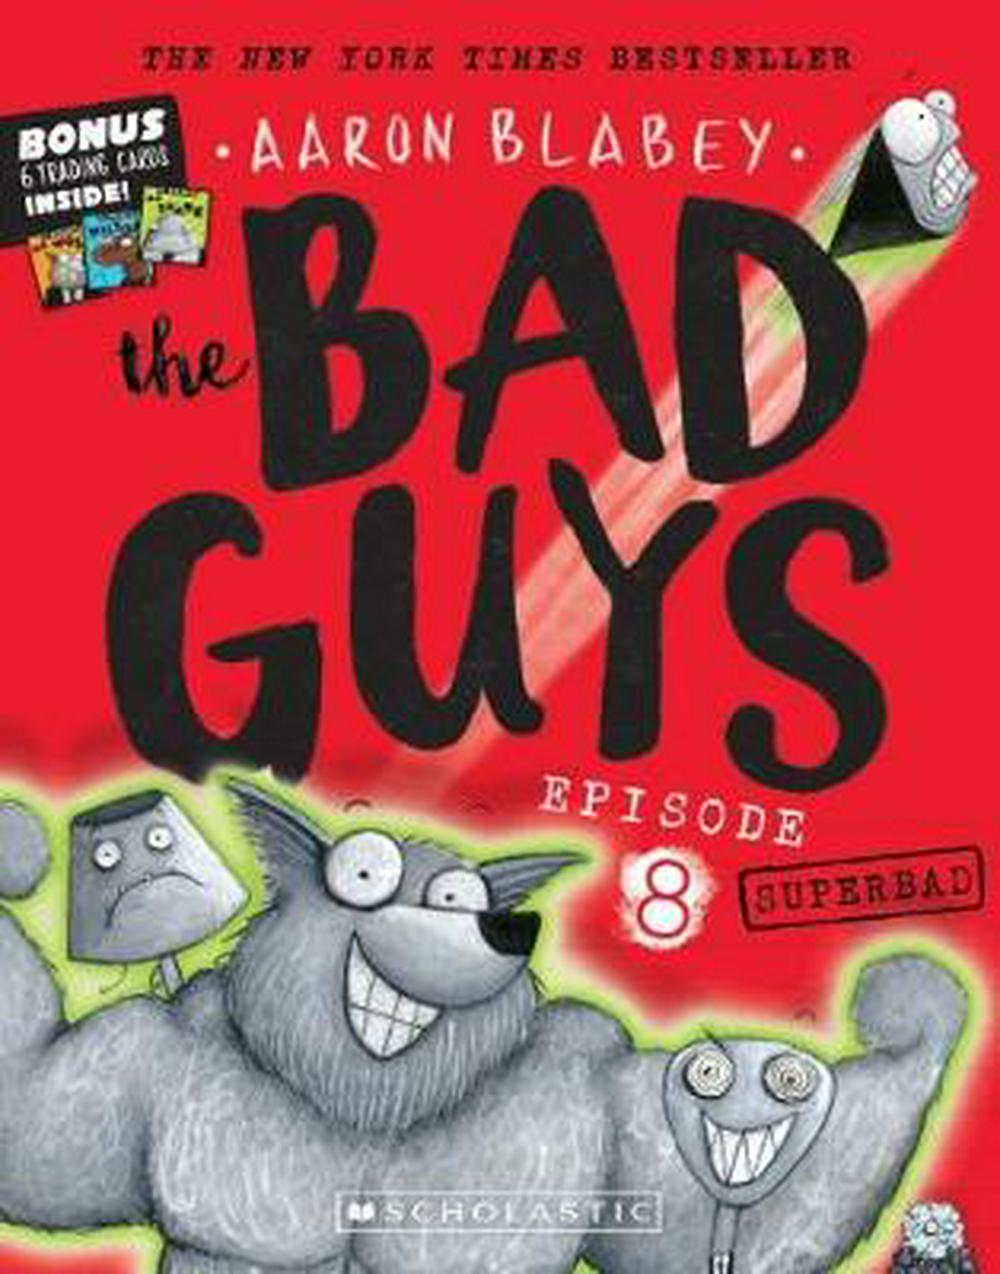 The Bad Guys Episode 8Superbad plus Trading Cards